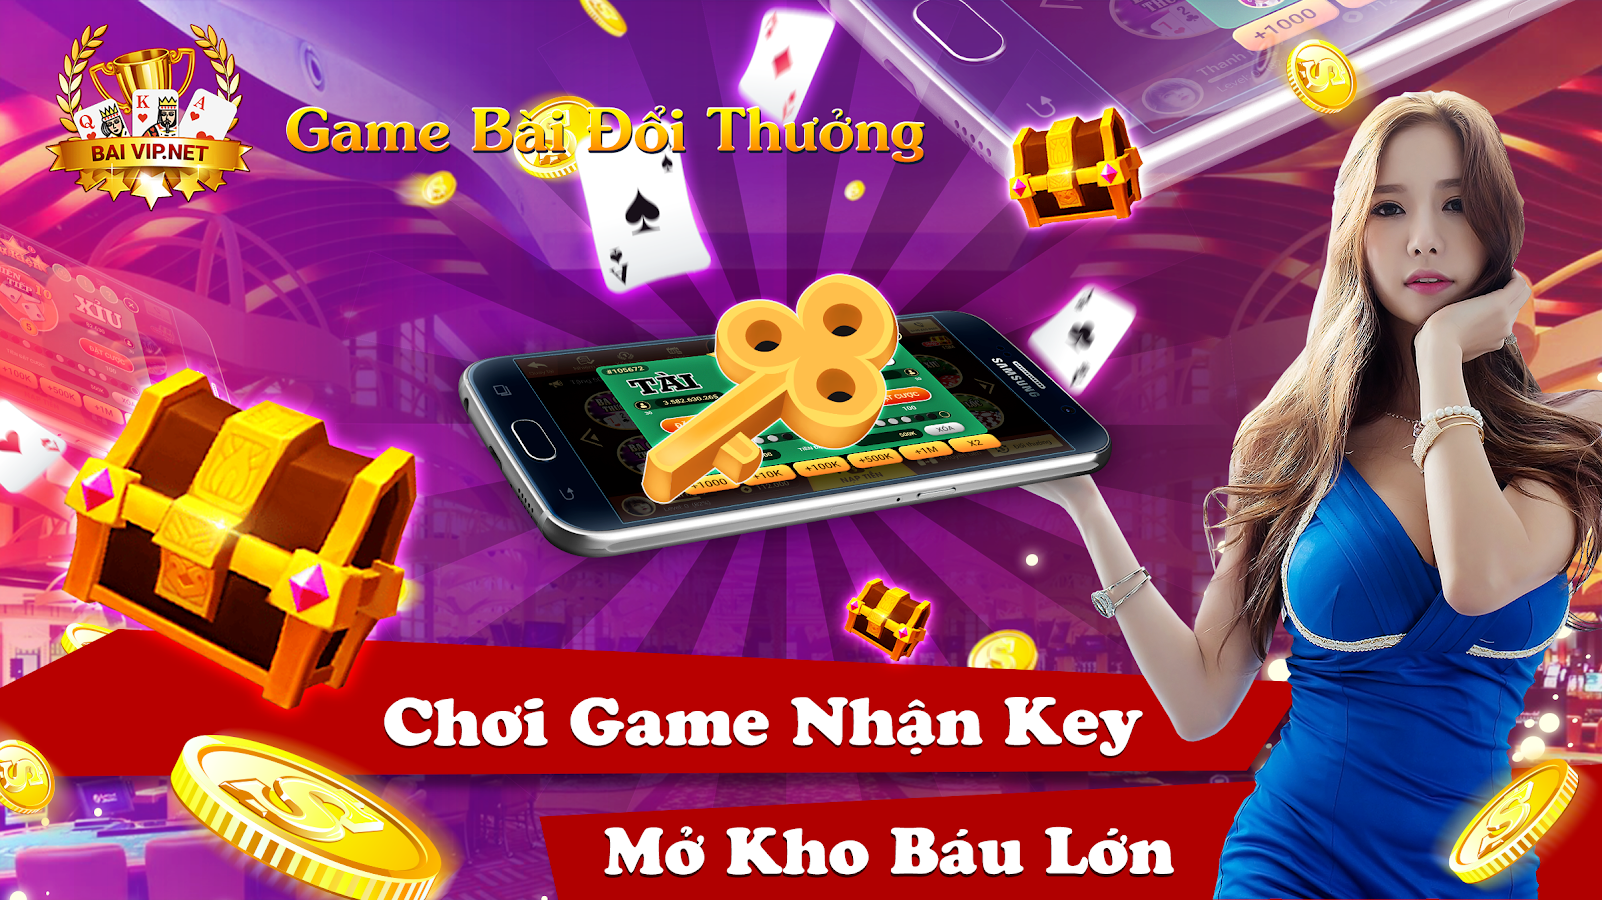 Game Bài Vip Online Screenshot 10